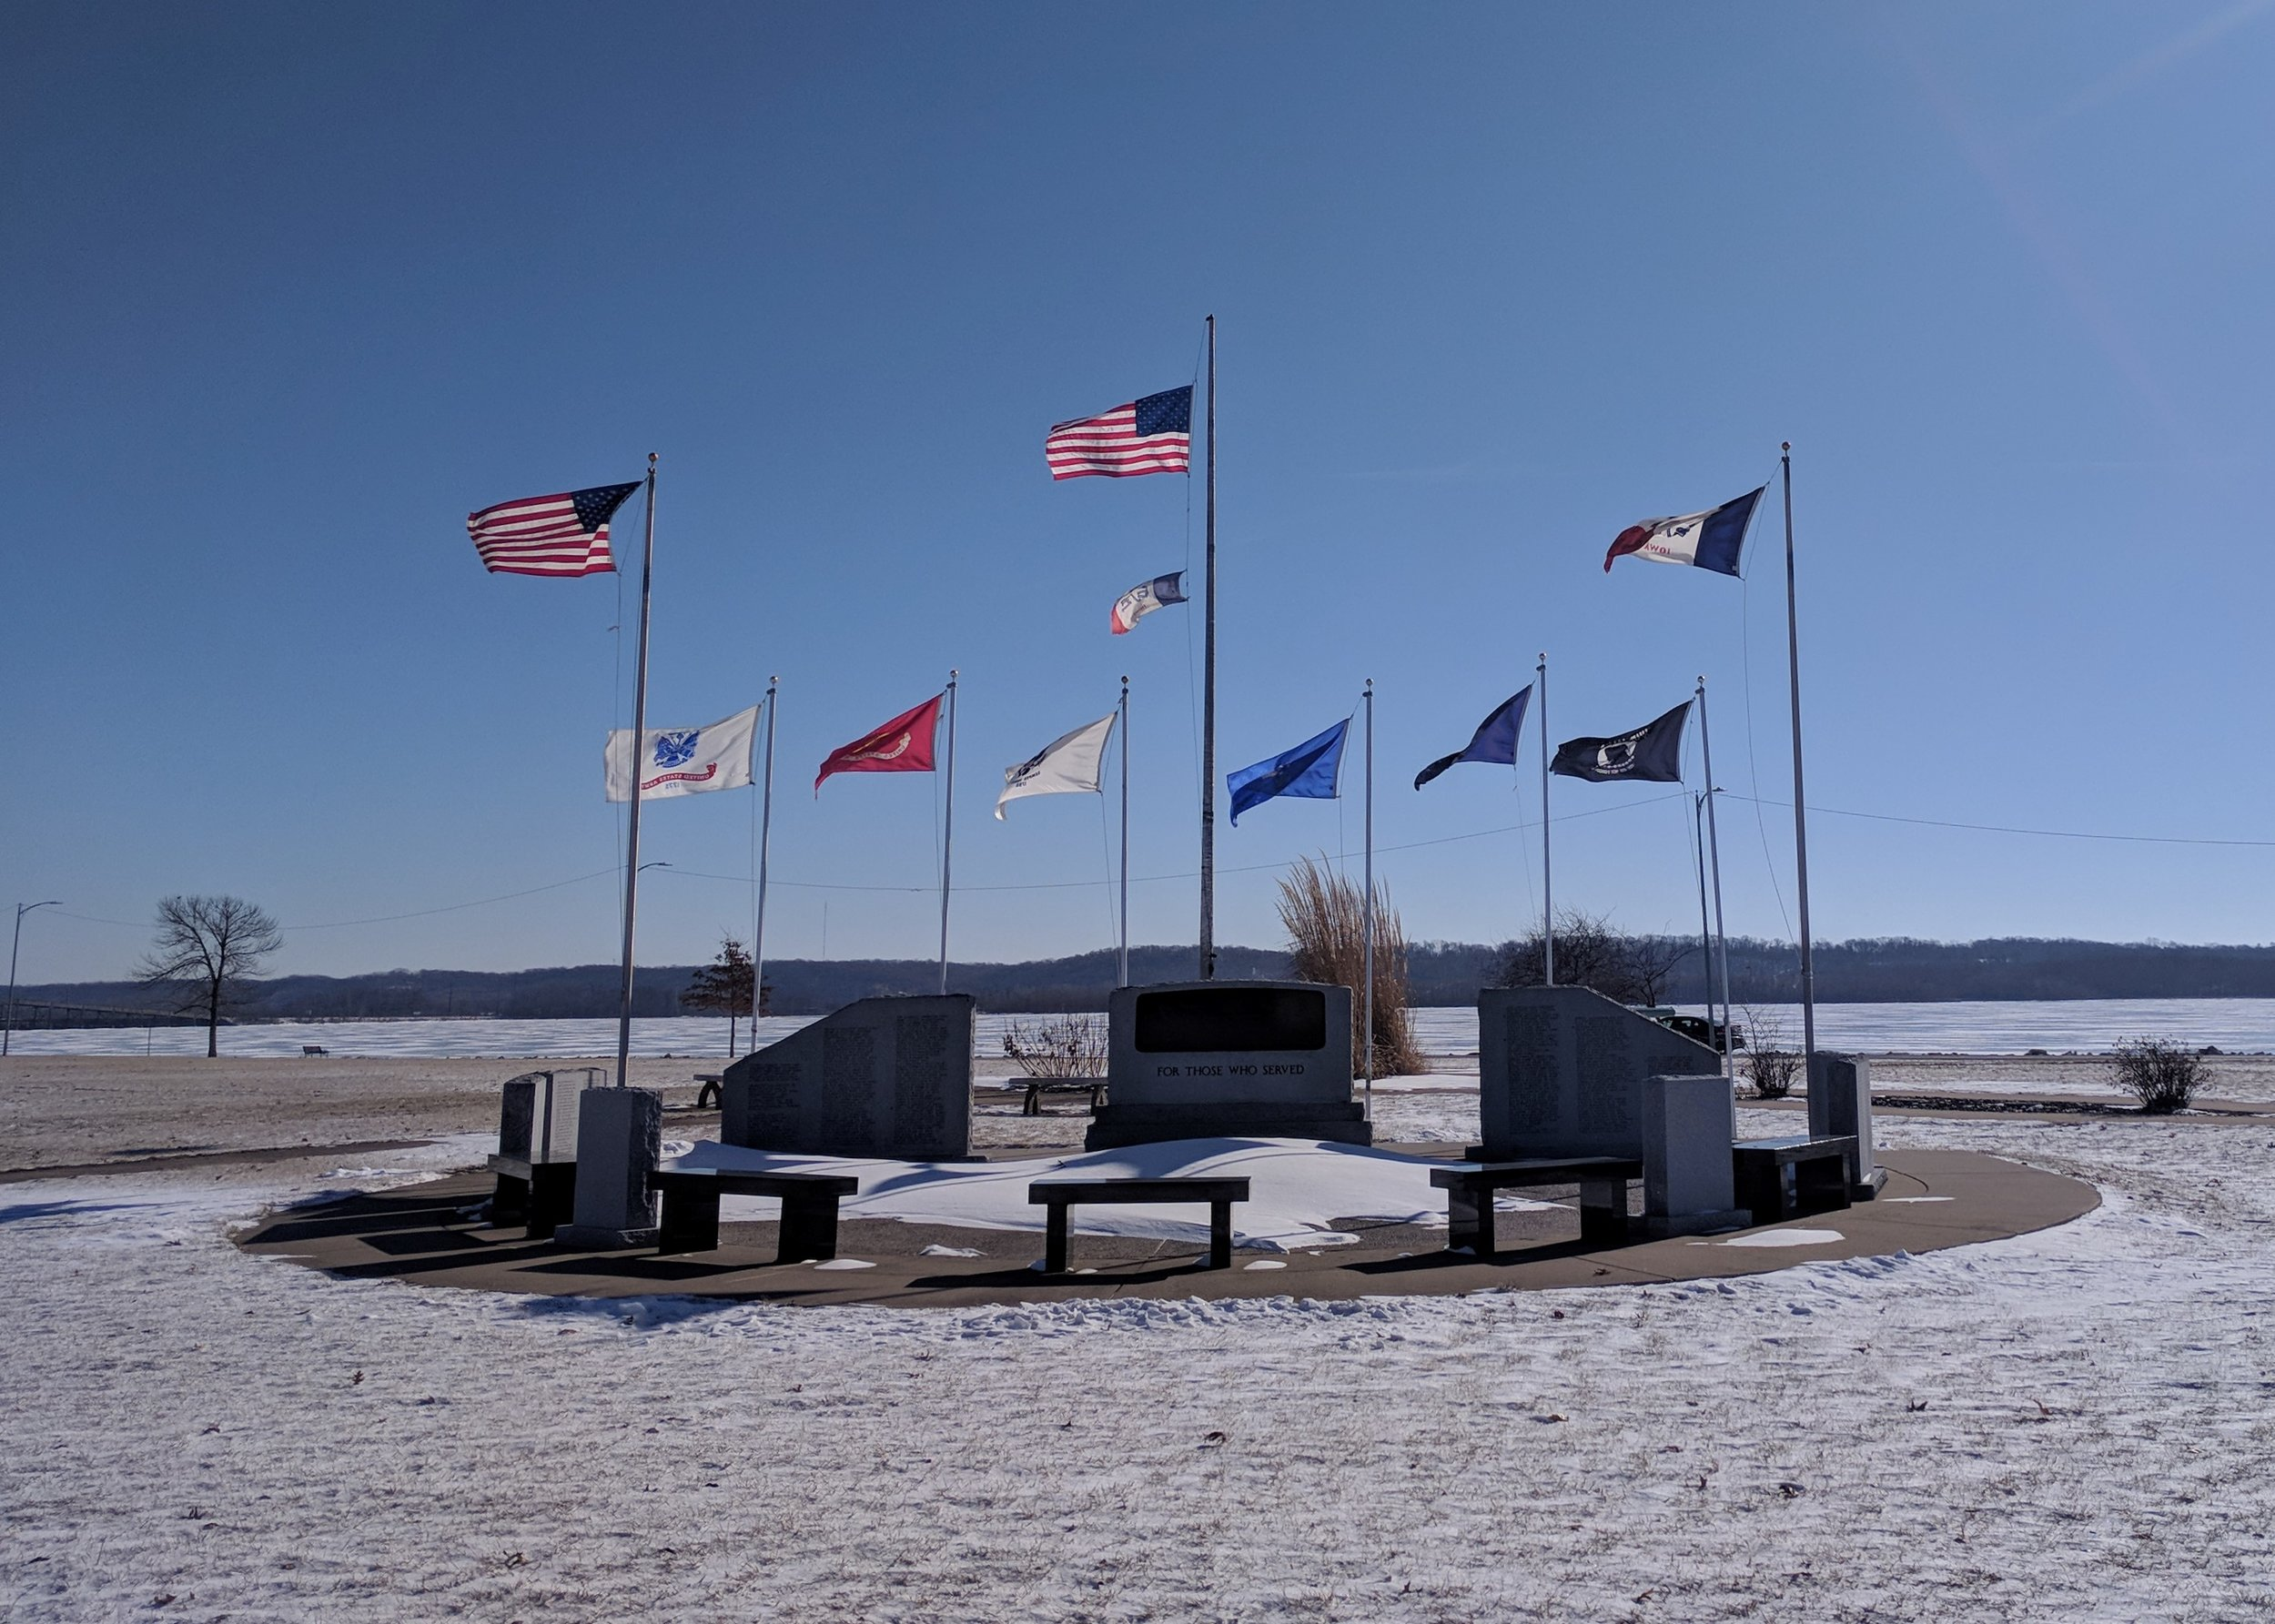 Veteran's Memorial at Riverview Park overlooking the frozen Mississippi River in Ft. Madison, Iowa.